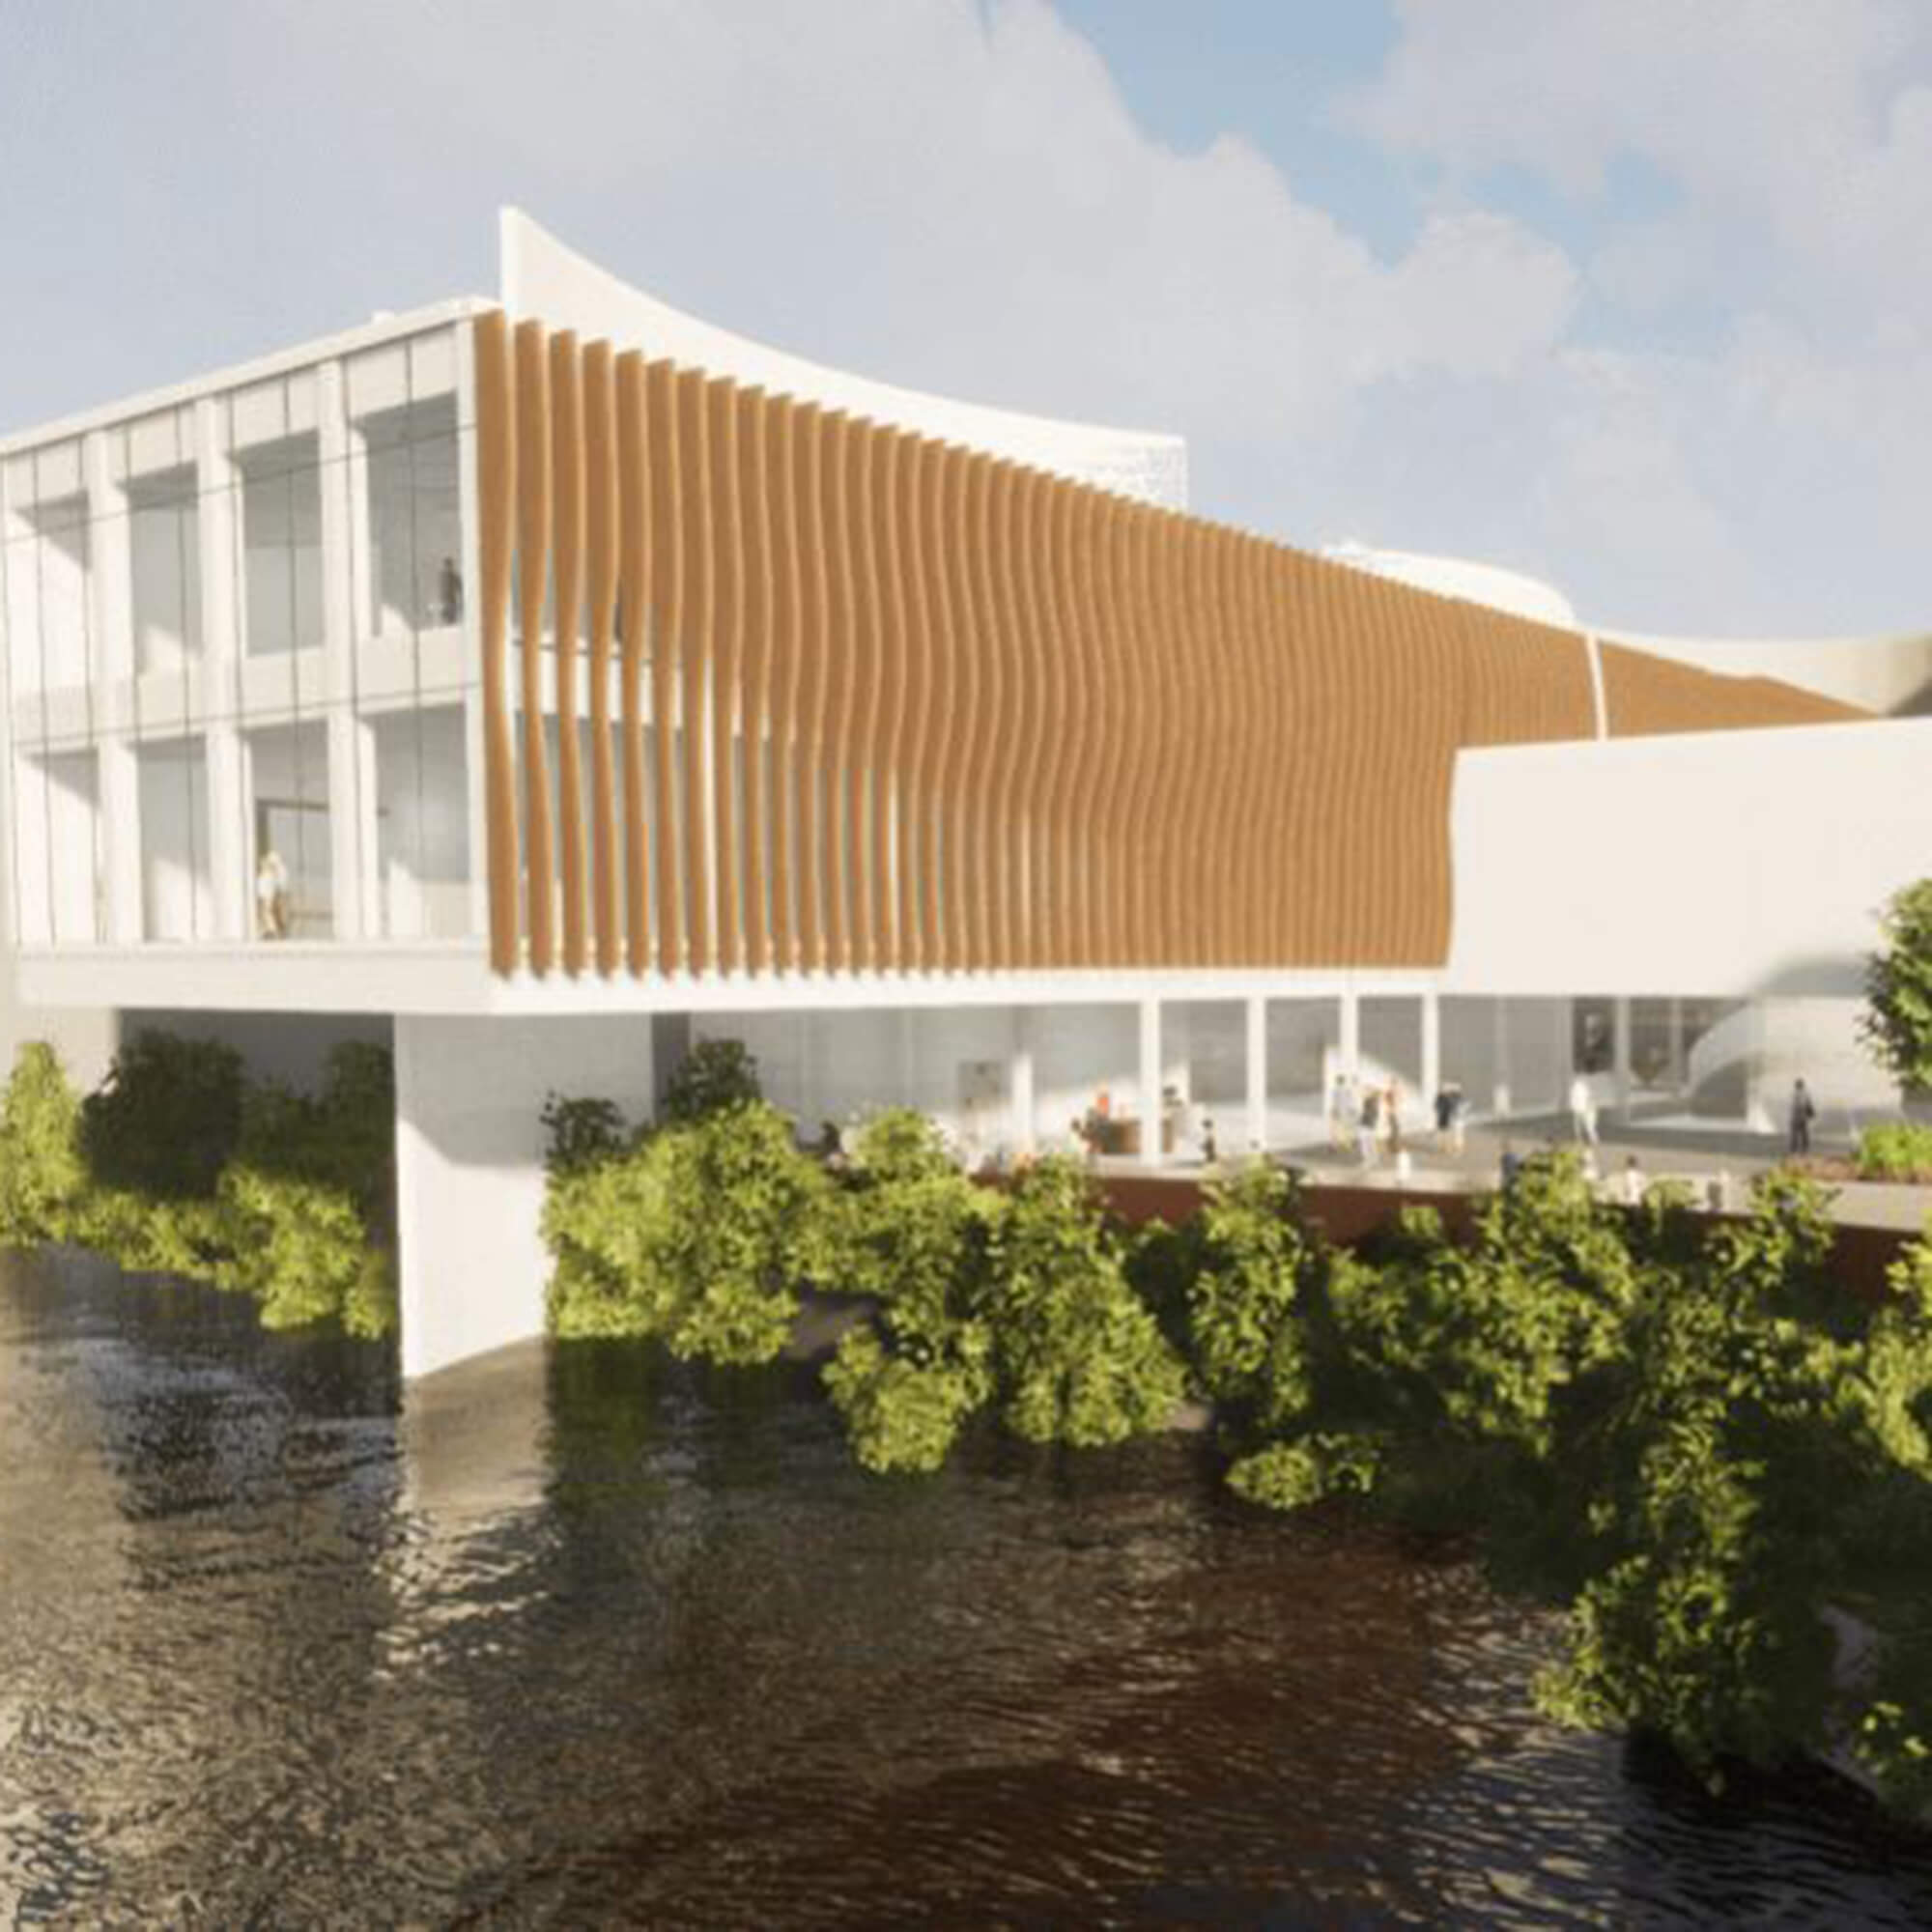 A drawing of a white and wood gallery and studios building by the side of a river with trees surrounding the building